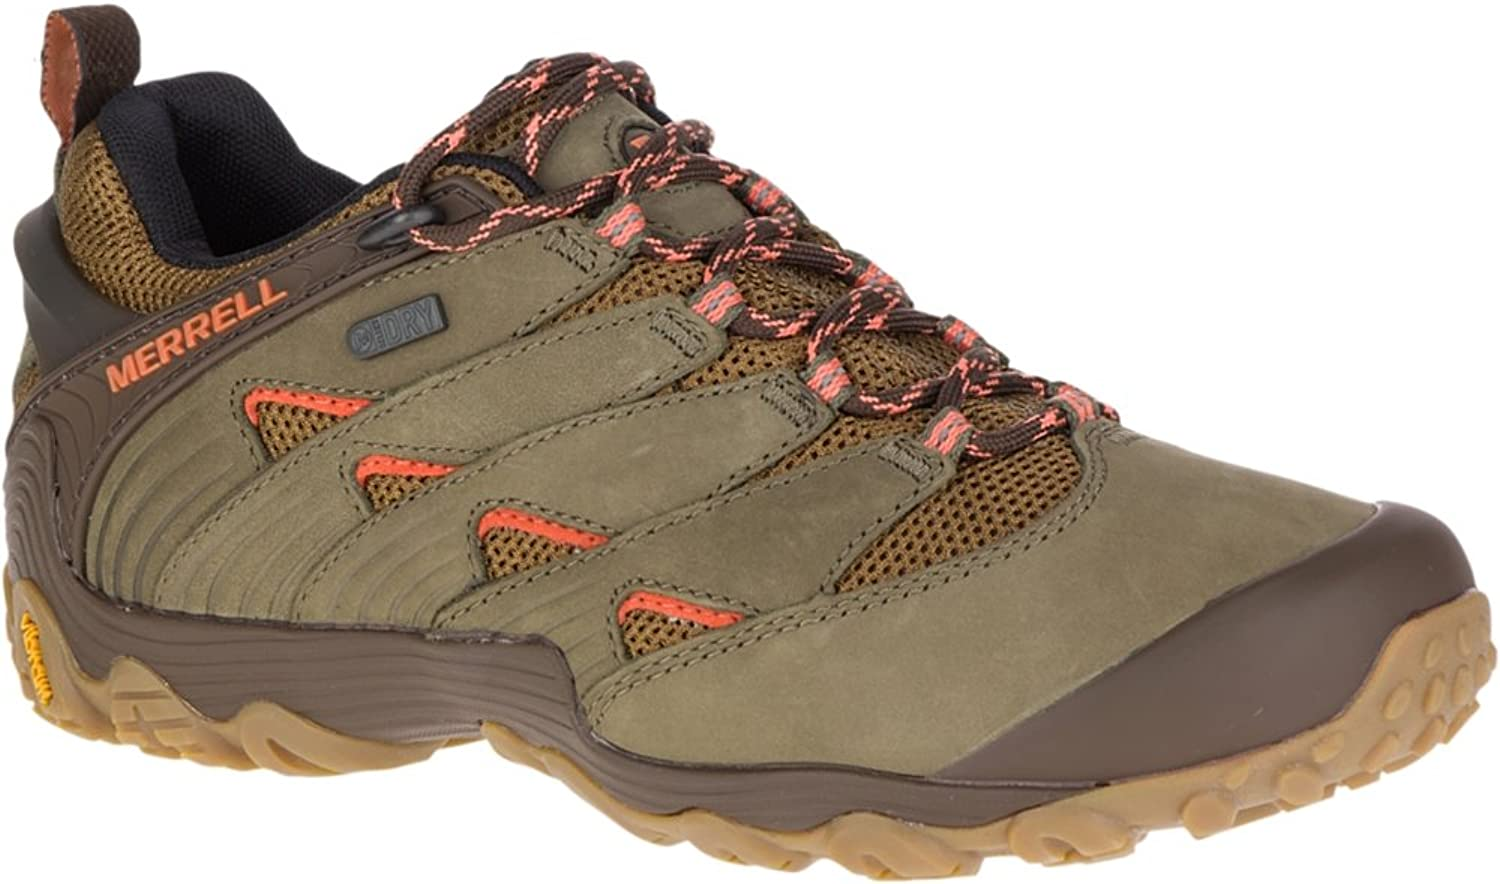 Merrell Wouomo Chameleon 7 Waterproof Hire sautope, Dusty Olive, 09.0 M US